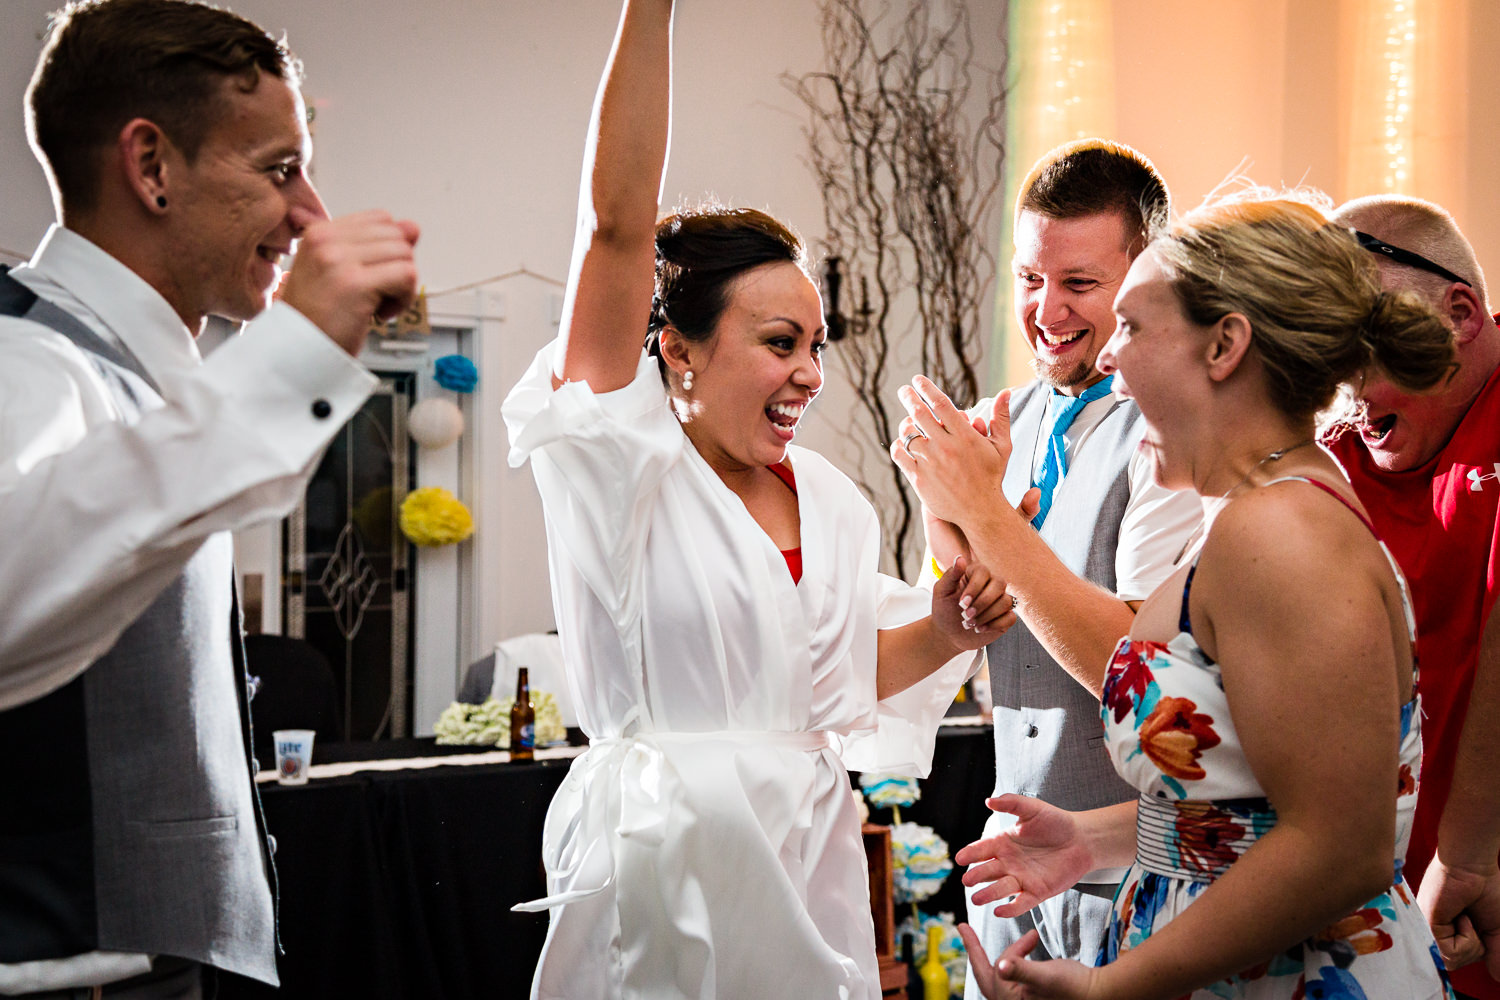 billings-montana-chanceys-wedding-reception-bride-laughing-with-guests.jpg